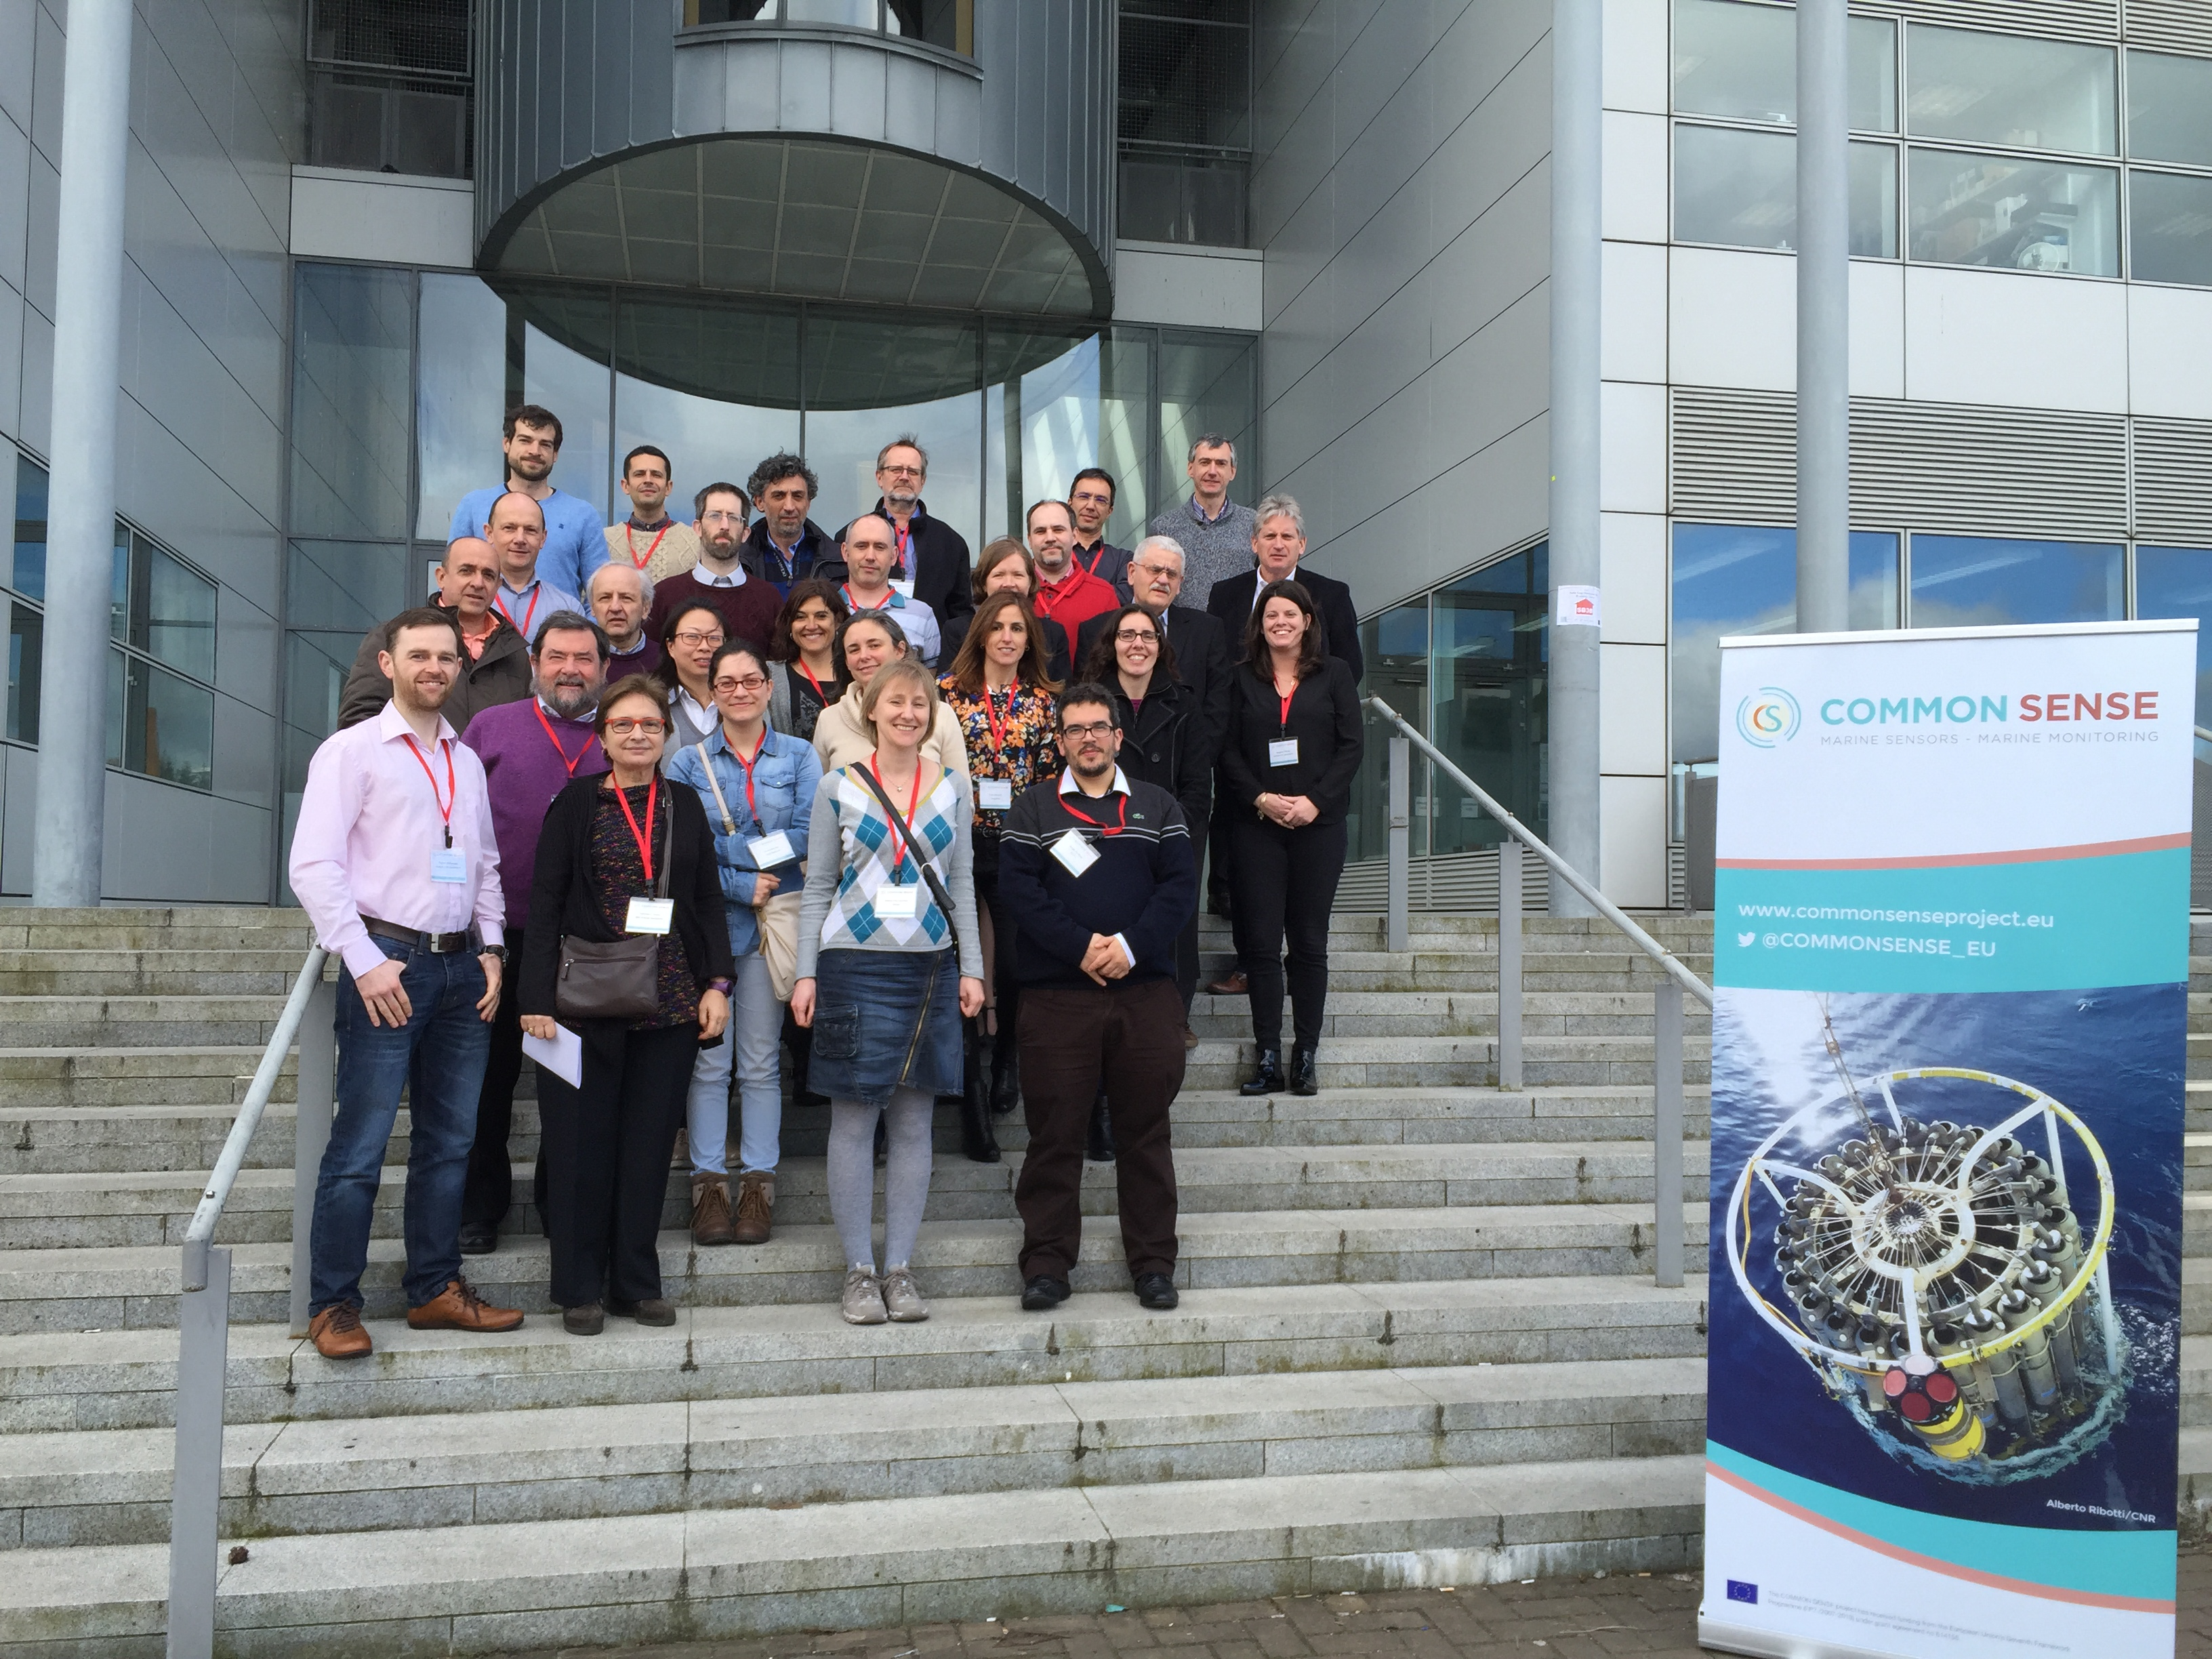 Members of the COMMON SENSE consortium at the projects partner meeting in April 2016 in Dublin Ireland Credit DCU